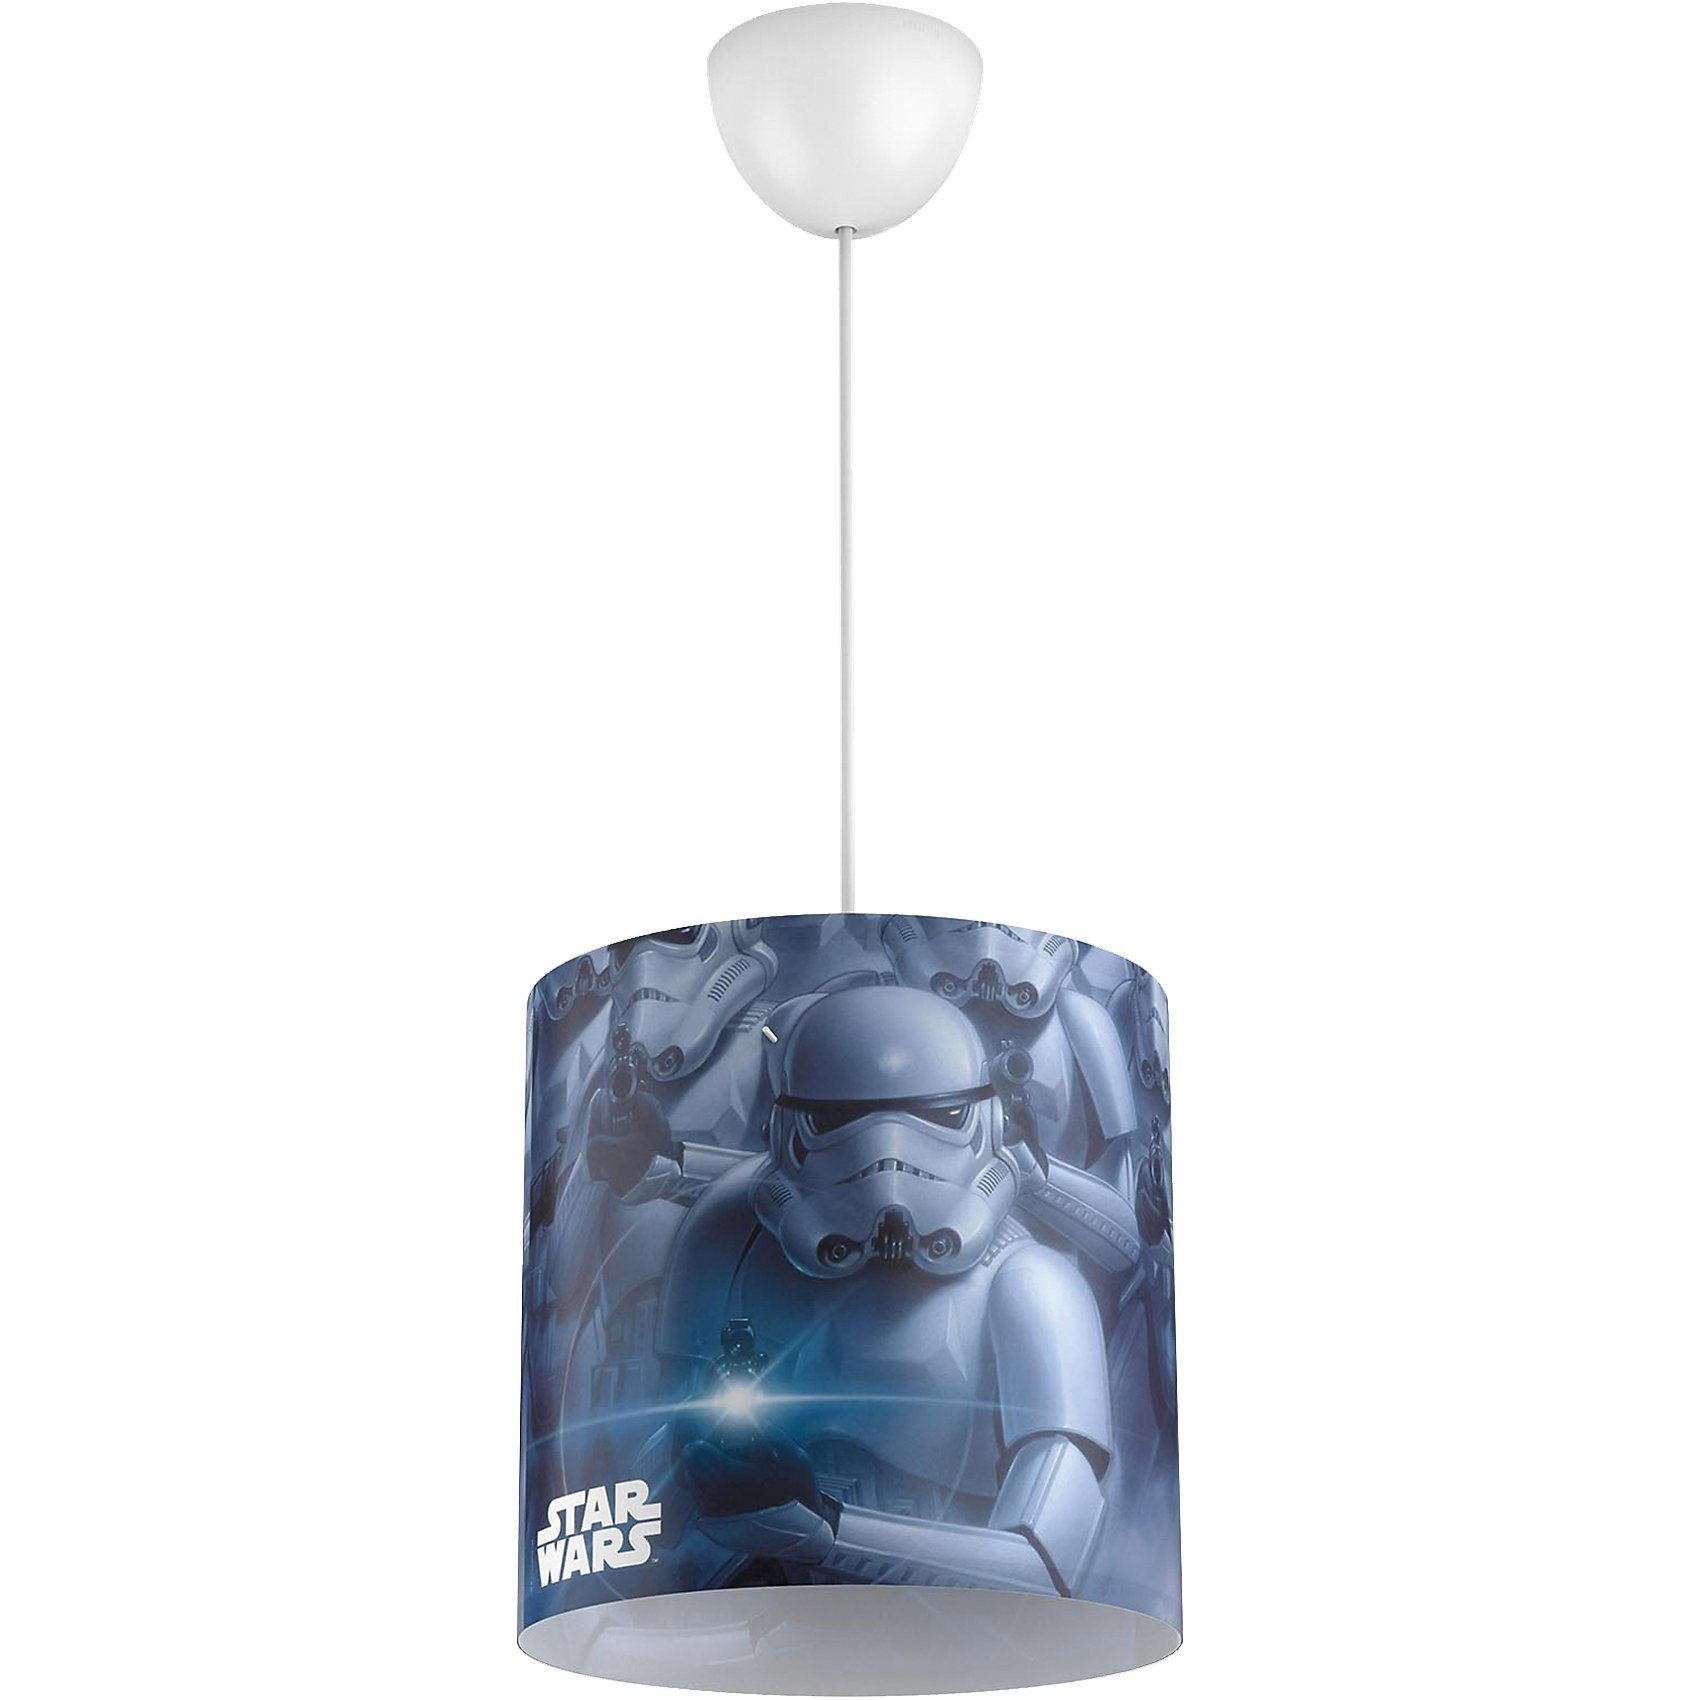 Philips Lighting Hängelampe, Star Wars